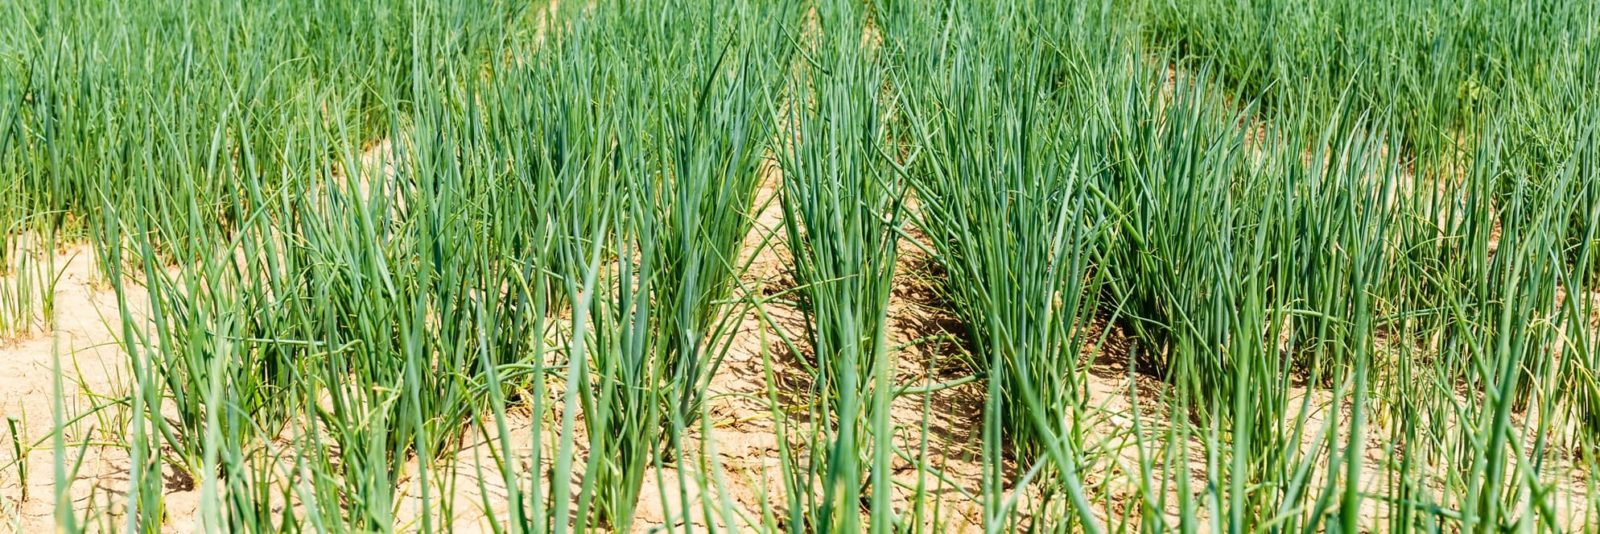 numerous shallot plants in a large field